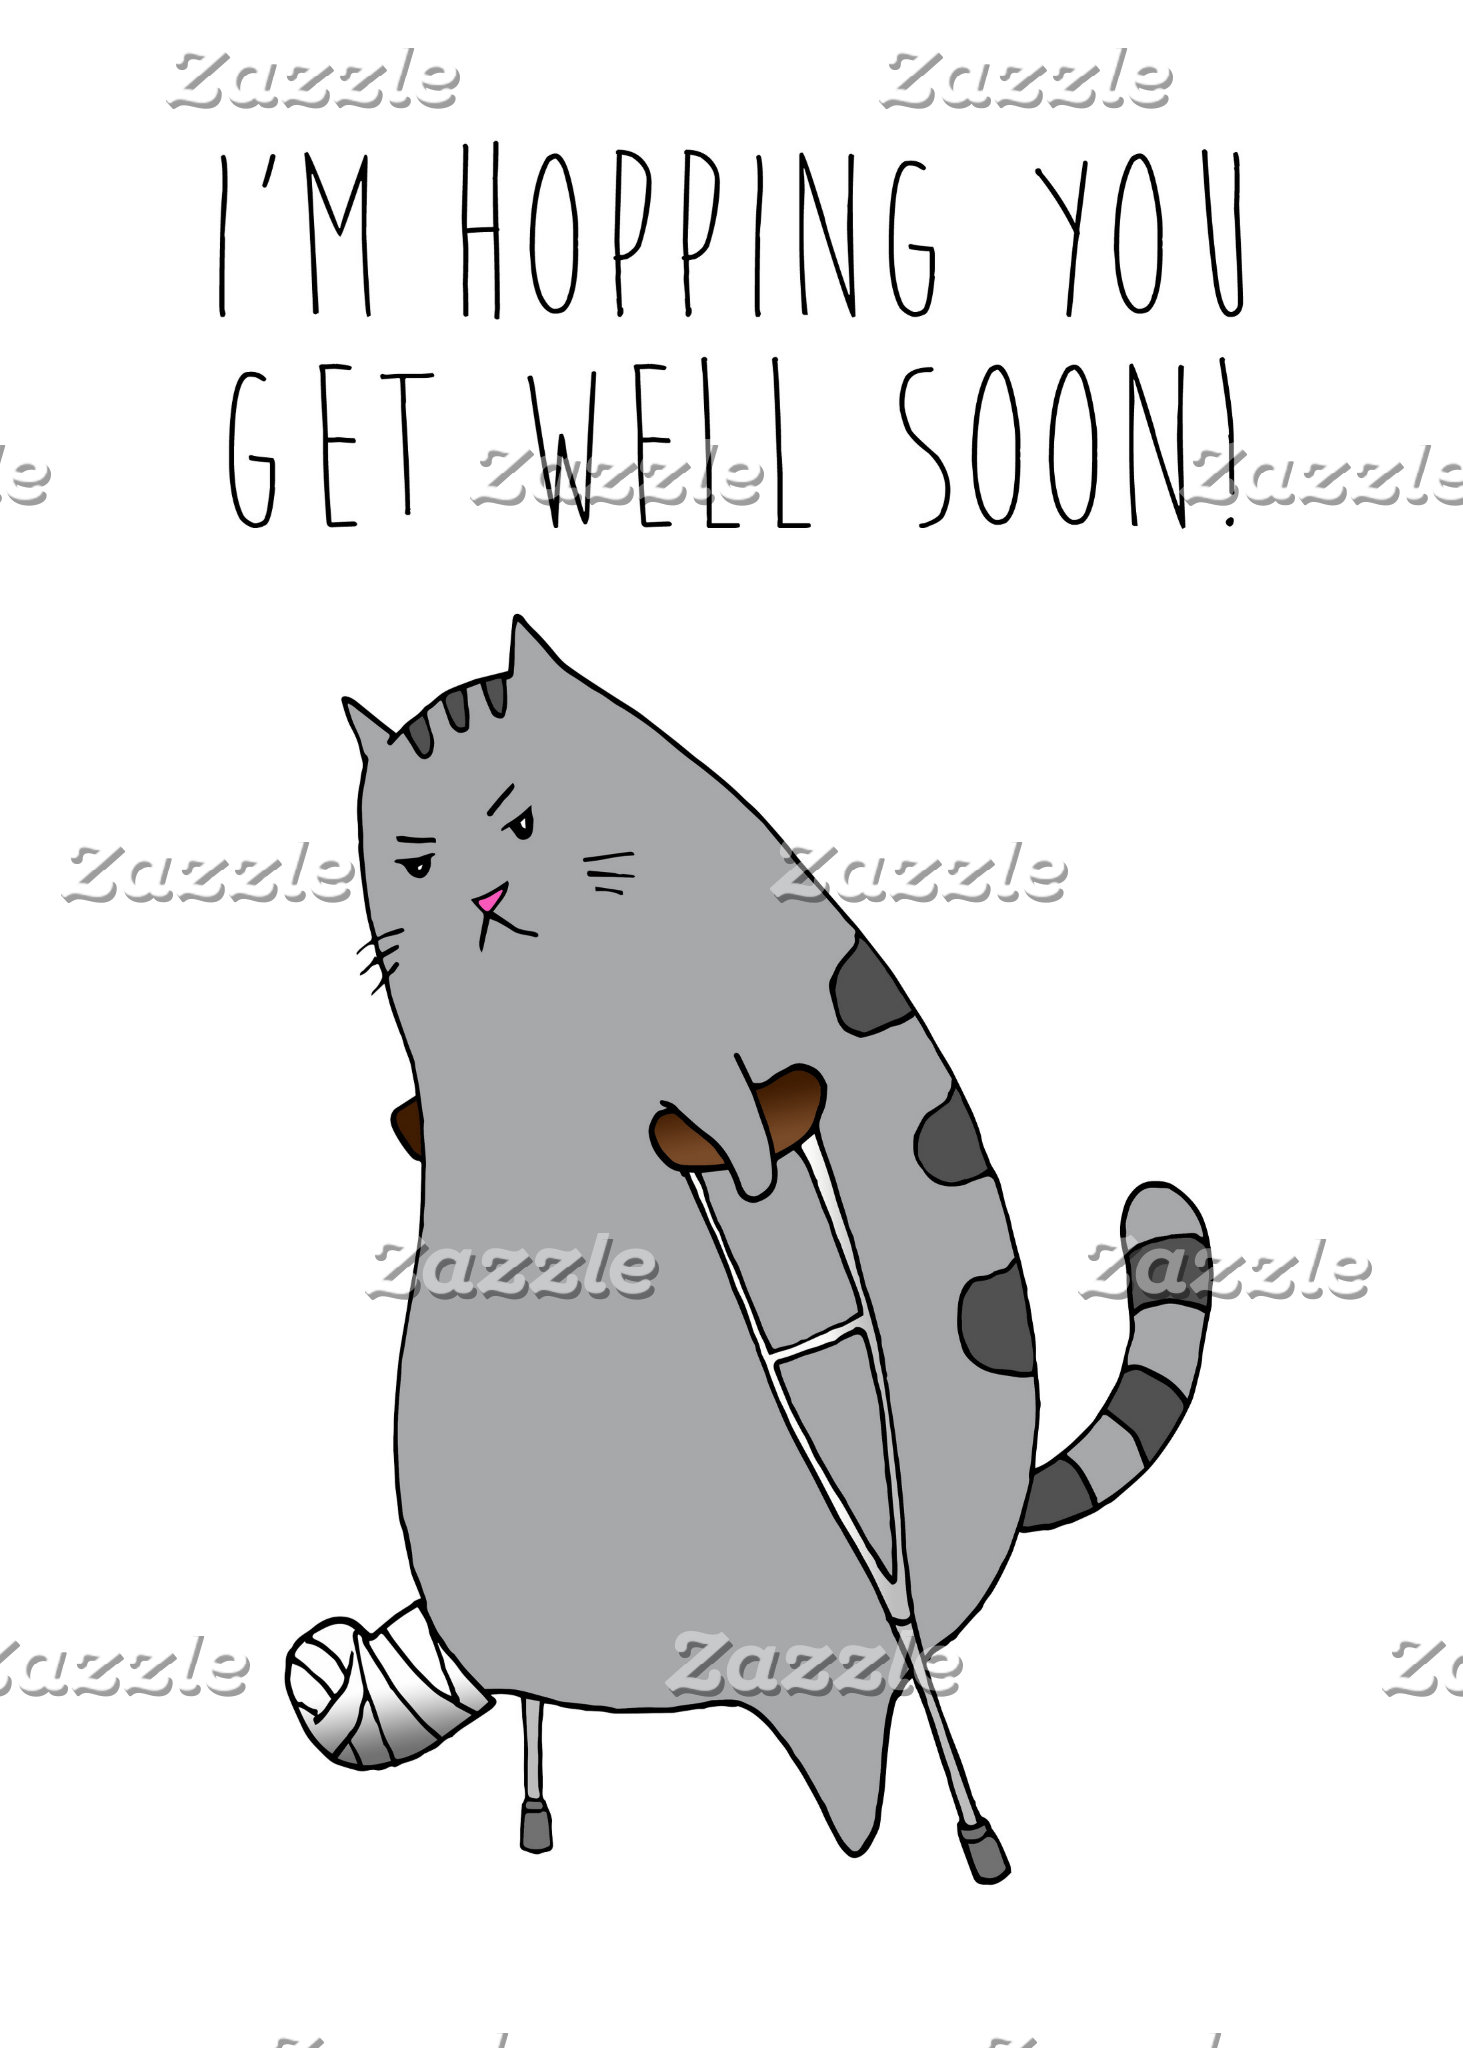 Greeting Cards: GET WELL